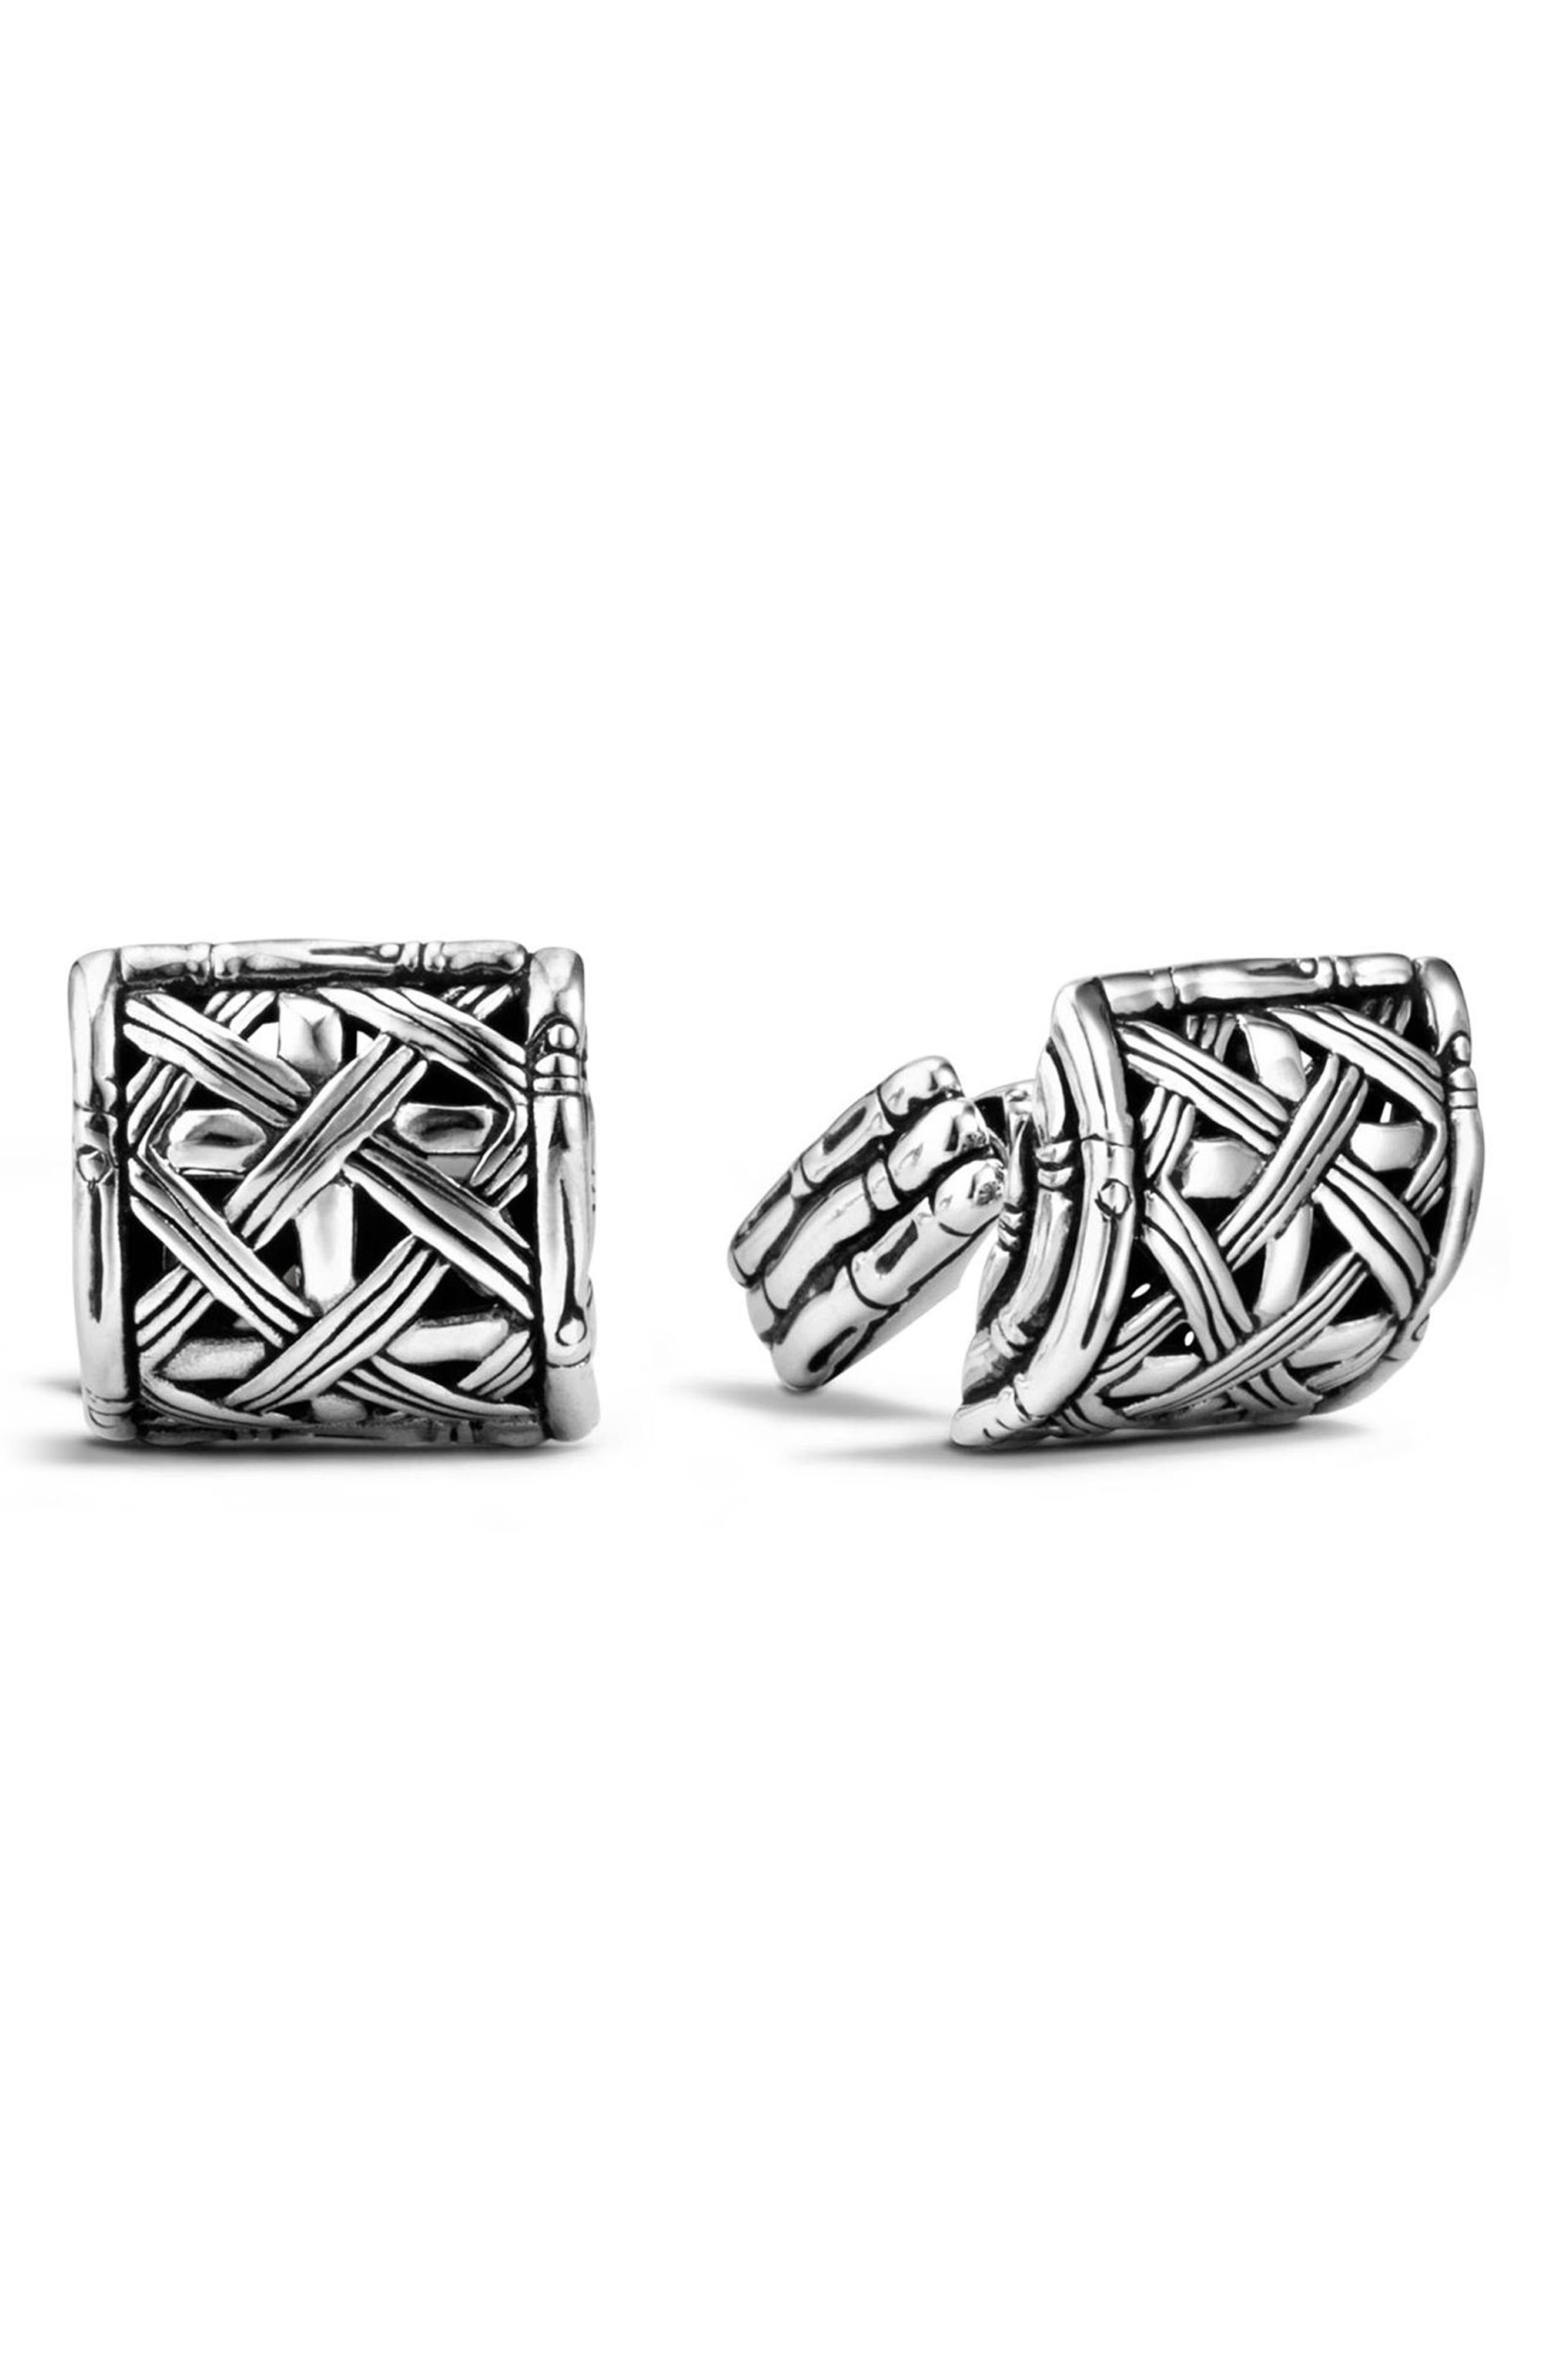 Bamboo Silver Woven Cuff Links,                             Main thumbnail 1, color,                             SILVER